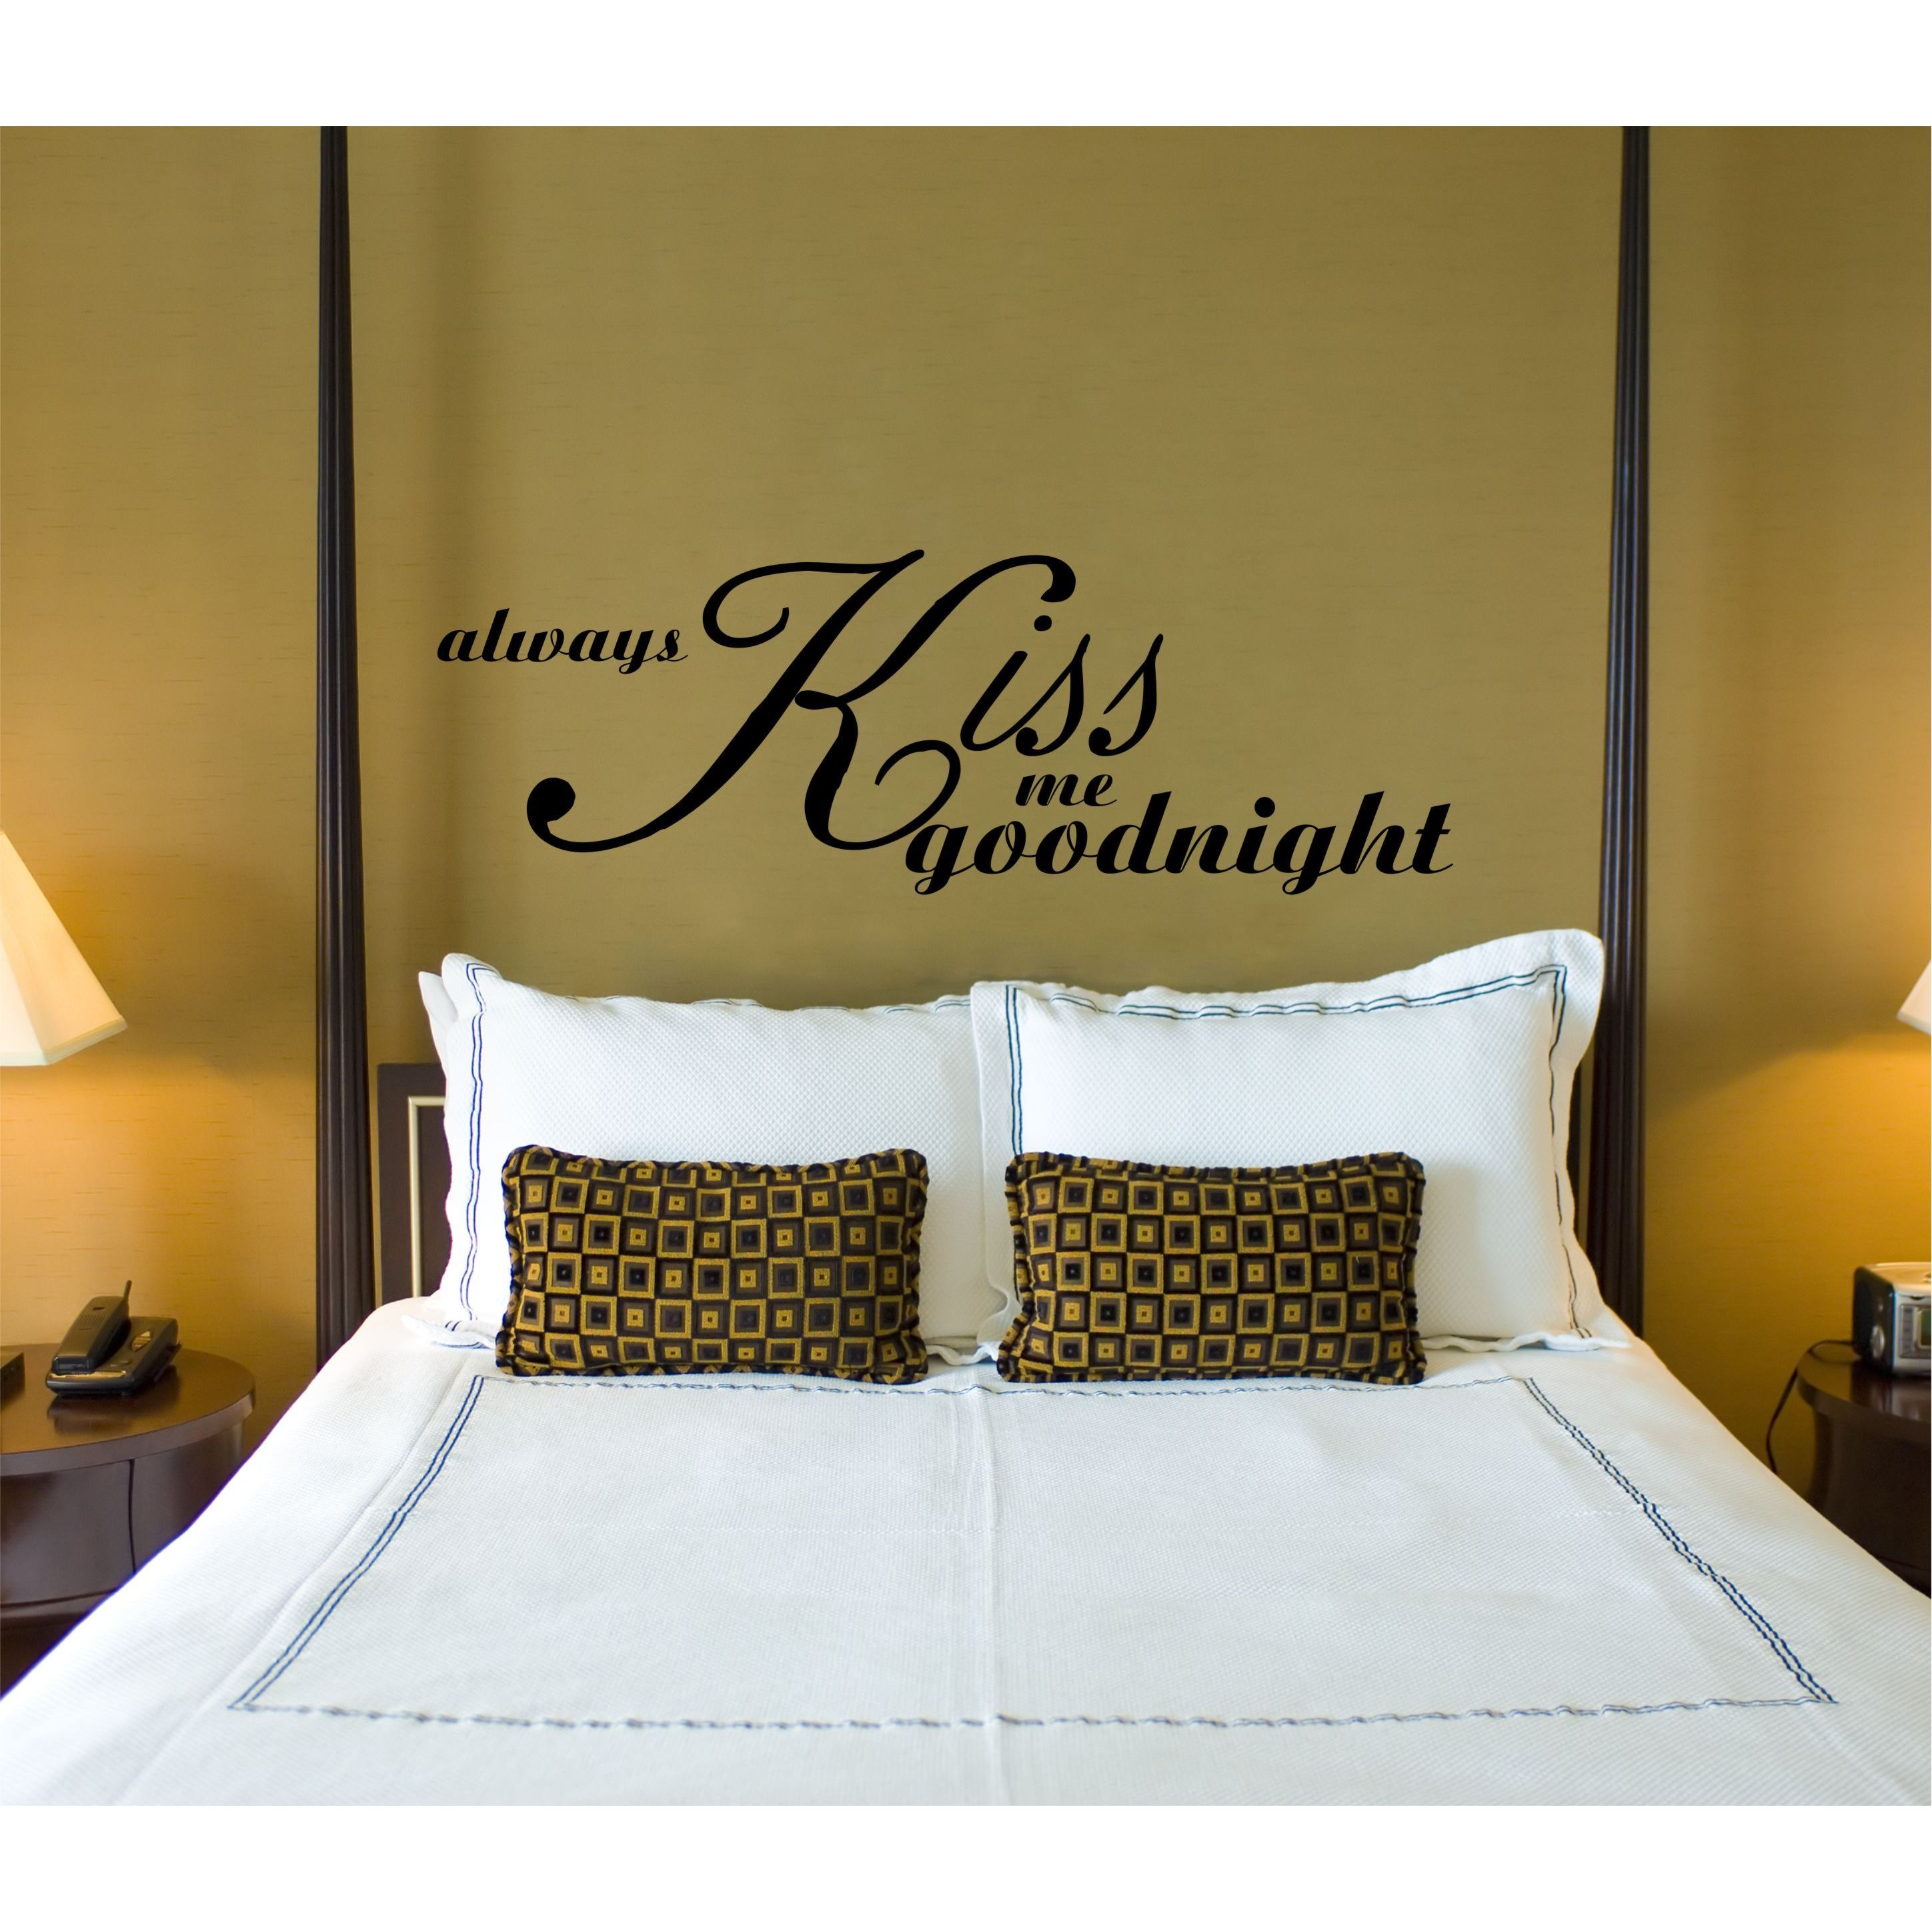 Everything Vinyl Decor Always Kiss Me Goodnight Vinyl Wall Art Sticker